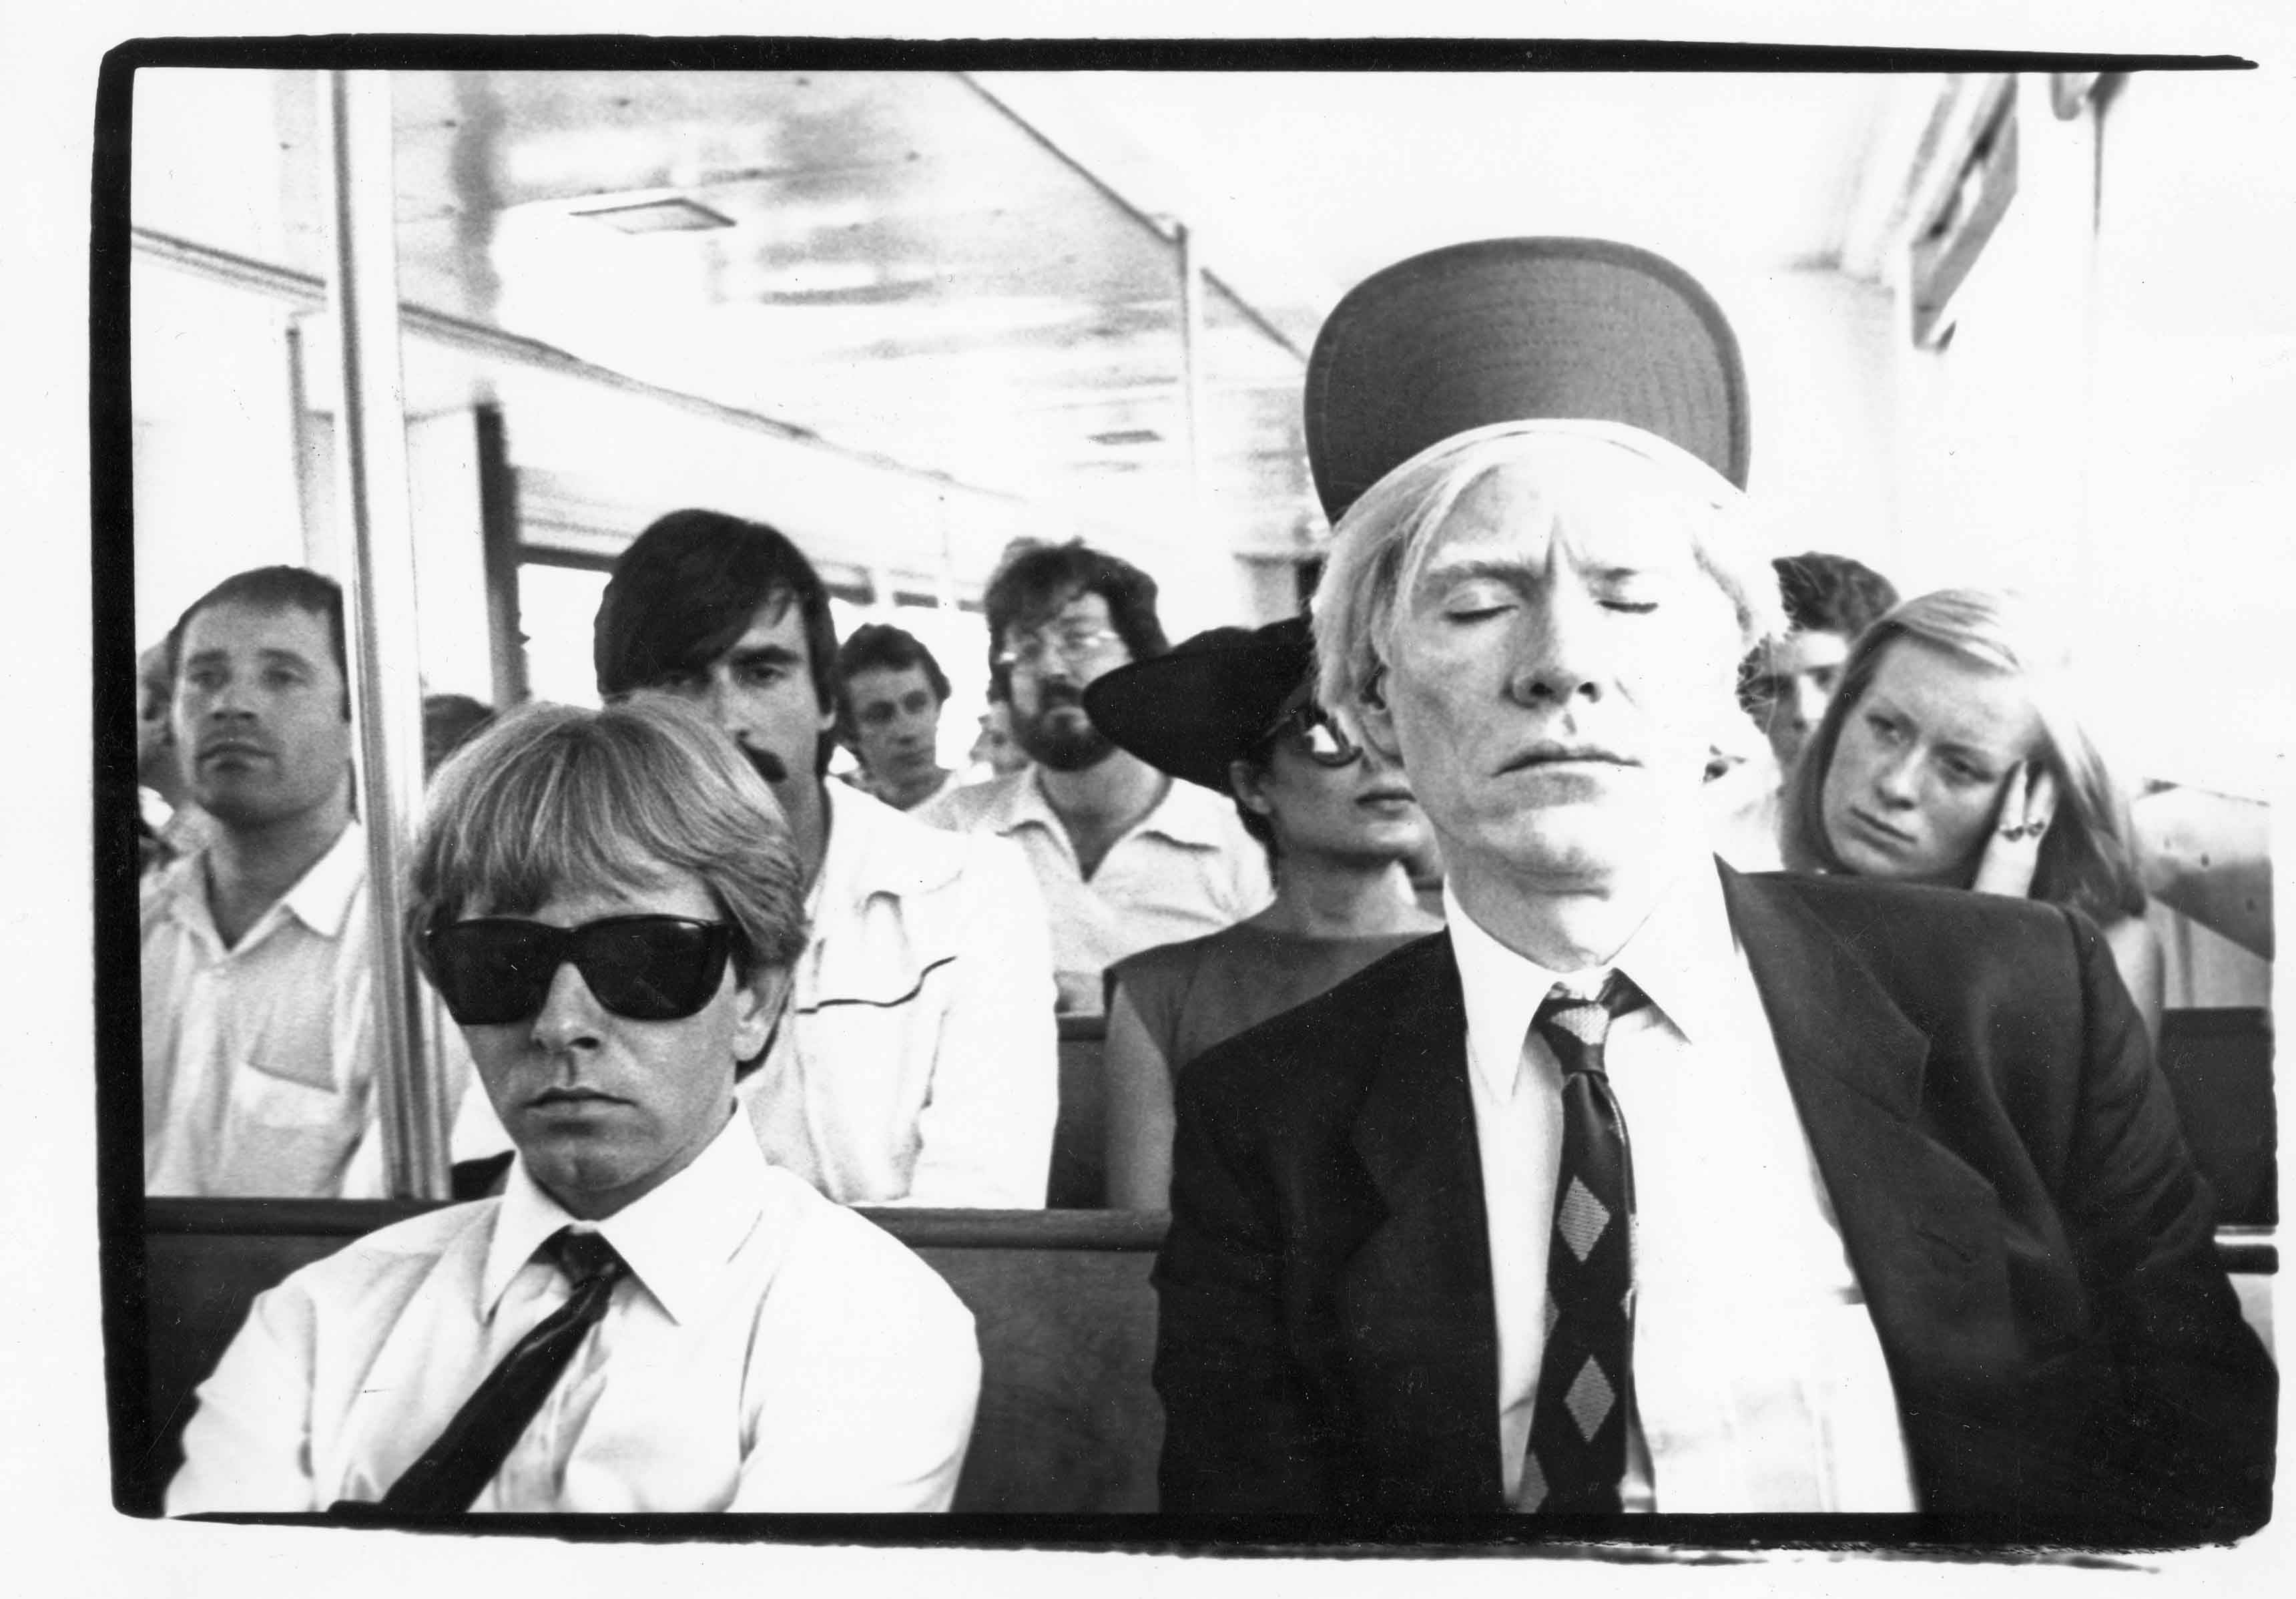 Andy et Rupert Smith, son imprimeur de sérigraphies, sur un ferry à destination de Fire Island (été 1979). © Bob Colacello